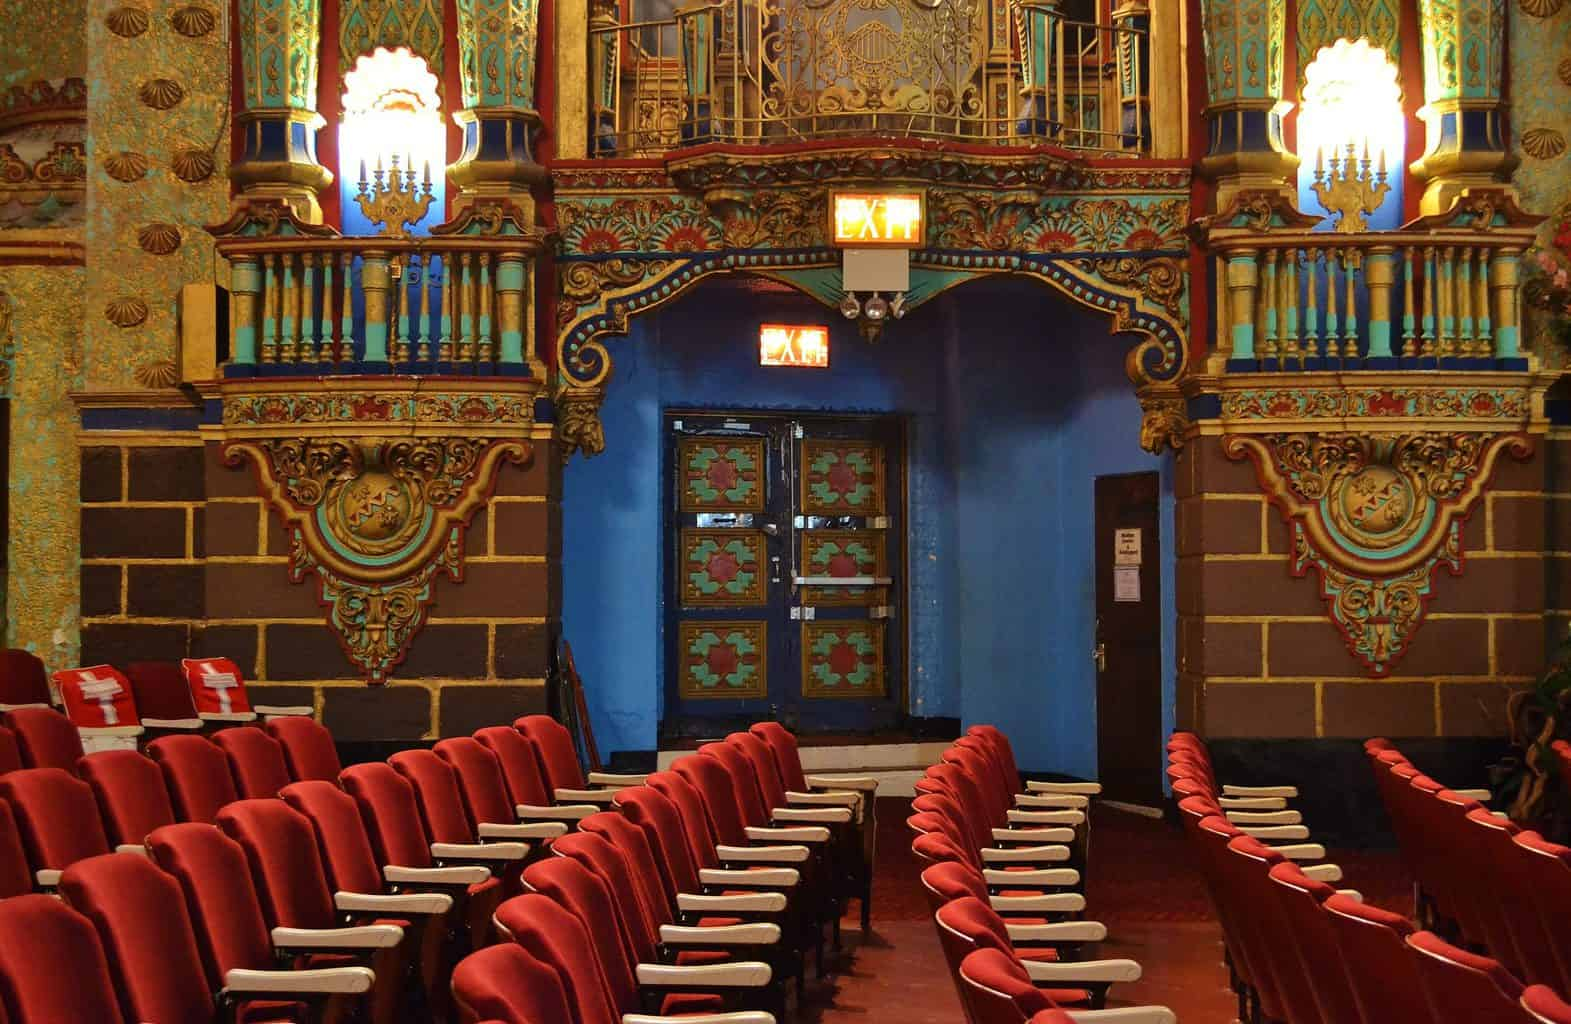 The vibrant, old-world decor of the Valencia Loews theater, which has been converted into a church in Jamaica, Queens.